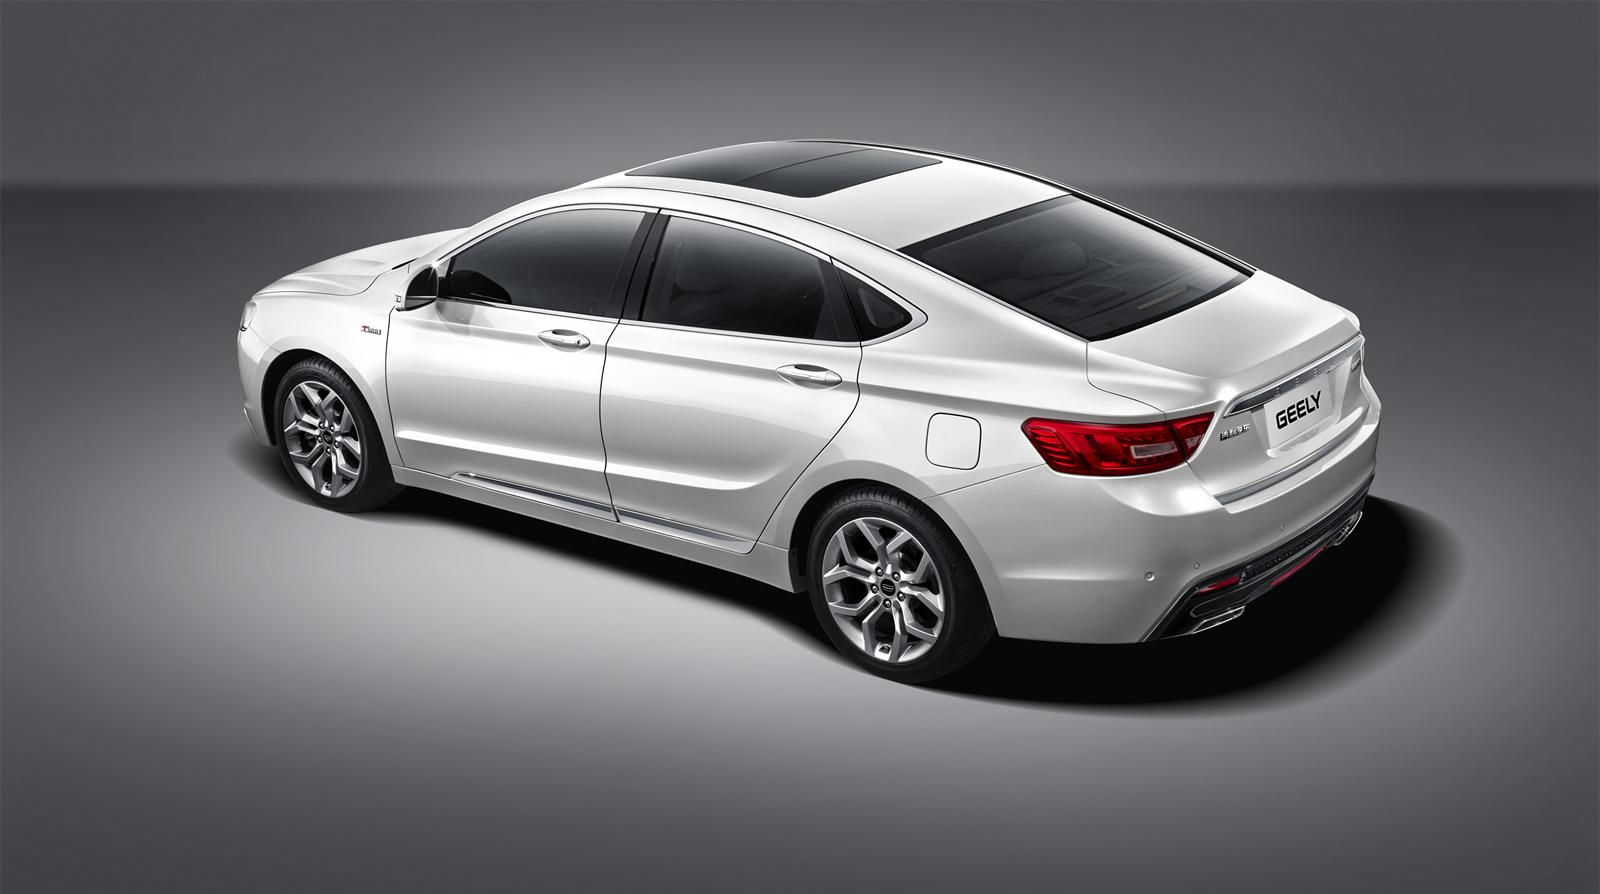 Geely Emgrand GSe is released in China for 119,800 RMB